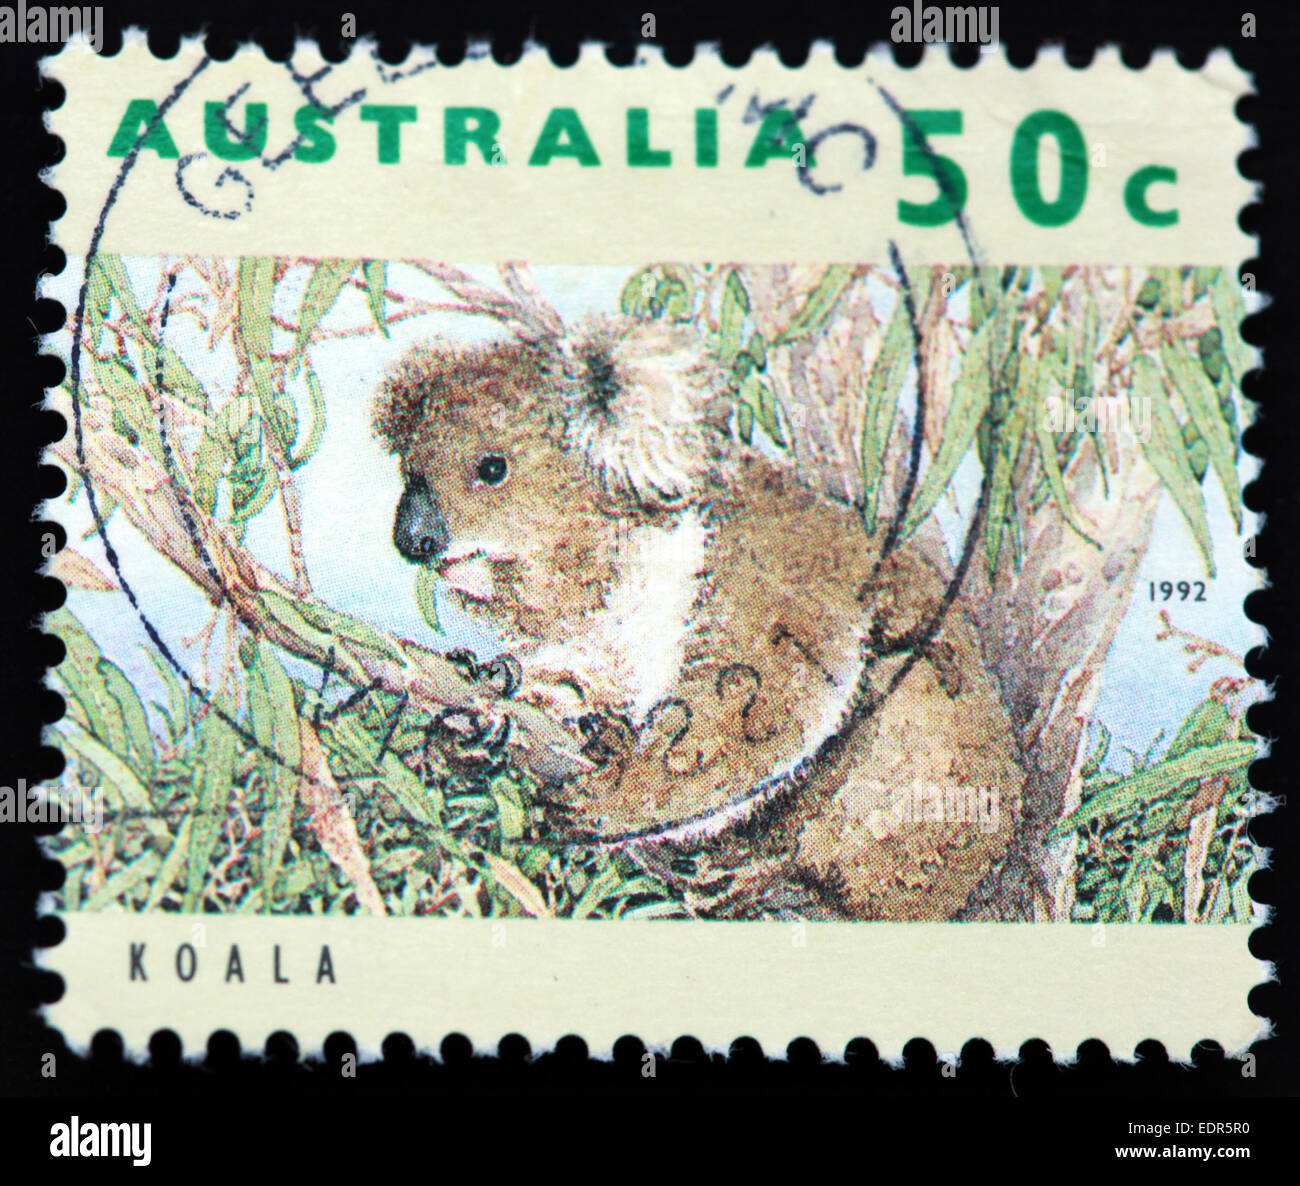 Used and postmarked Australia / Austrailian Stamp 50c Koala 1992 Stock Photo